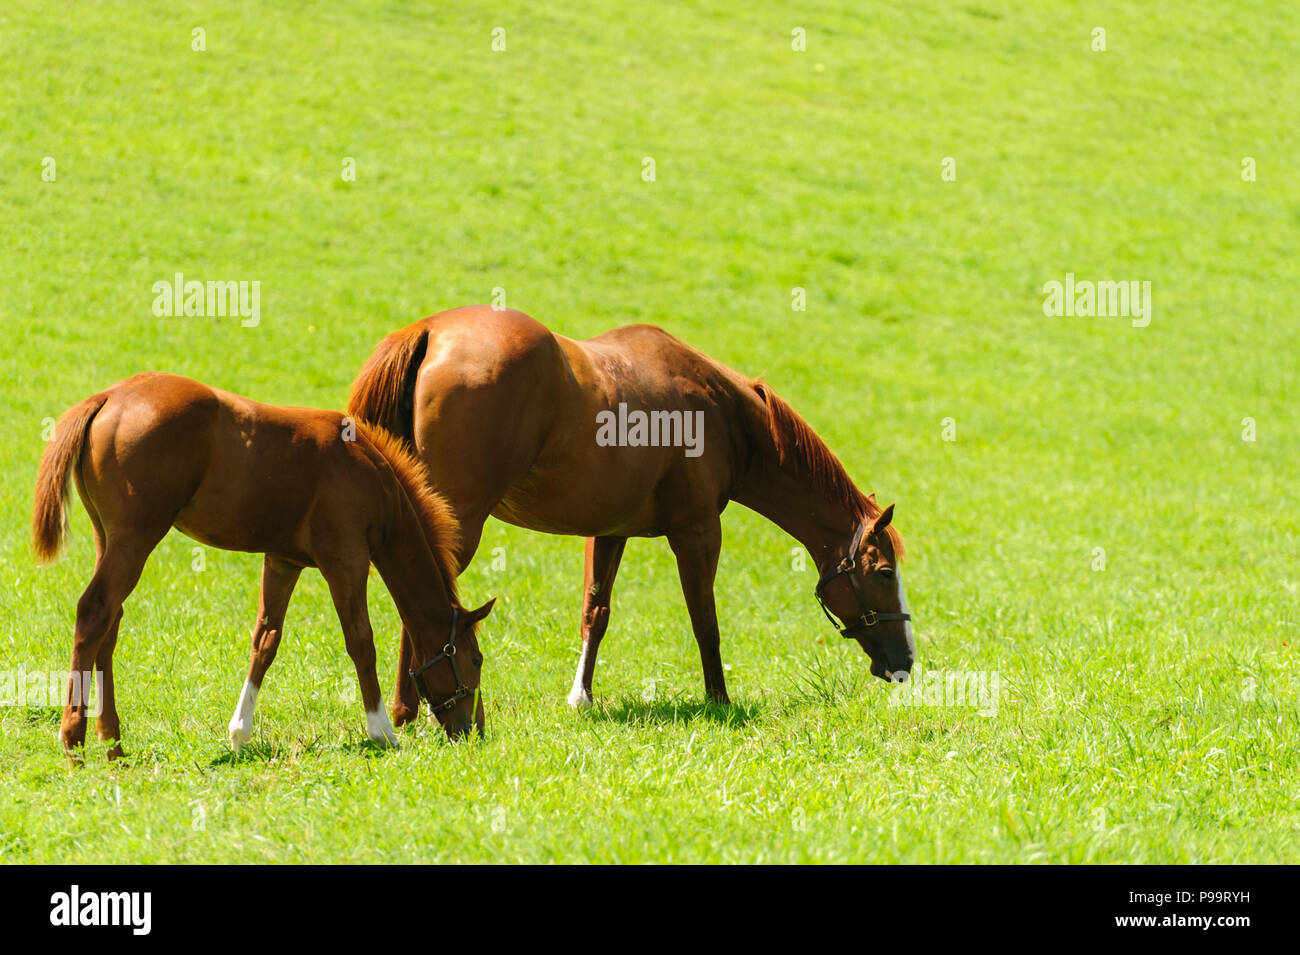 horses-grazing-on-kentucky-horse-farm-P99RYH.jpg